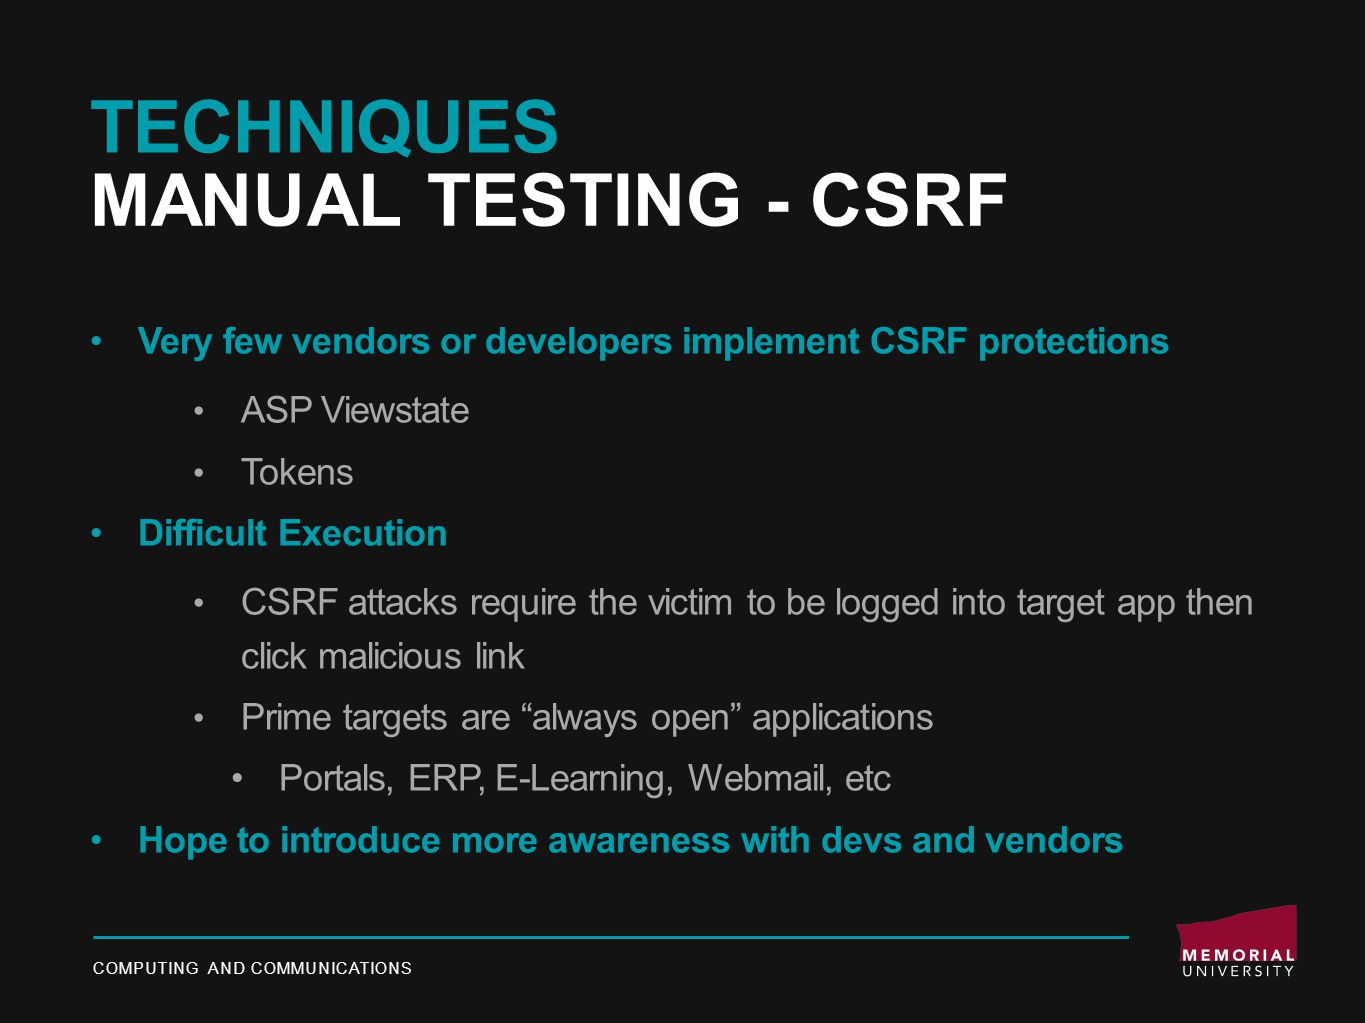 TECHNIQUES MANUAL TESTING - CSRF Very few vendors or developers implement CSRF protections ASP Viewstate Tokens Difficult Execution CSRF attacks require the victim to be logged into target app then click malicious link Prime targets are always open applications Portals, ERP, E-Learning, Webmail, etc Hope to introduce more awareness with devs and vendors COMPUTING AND COMMUNICATIONS